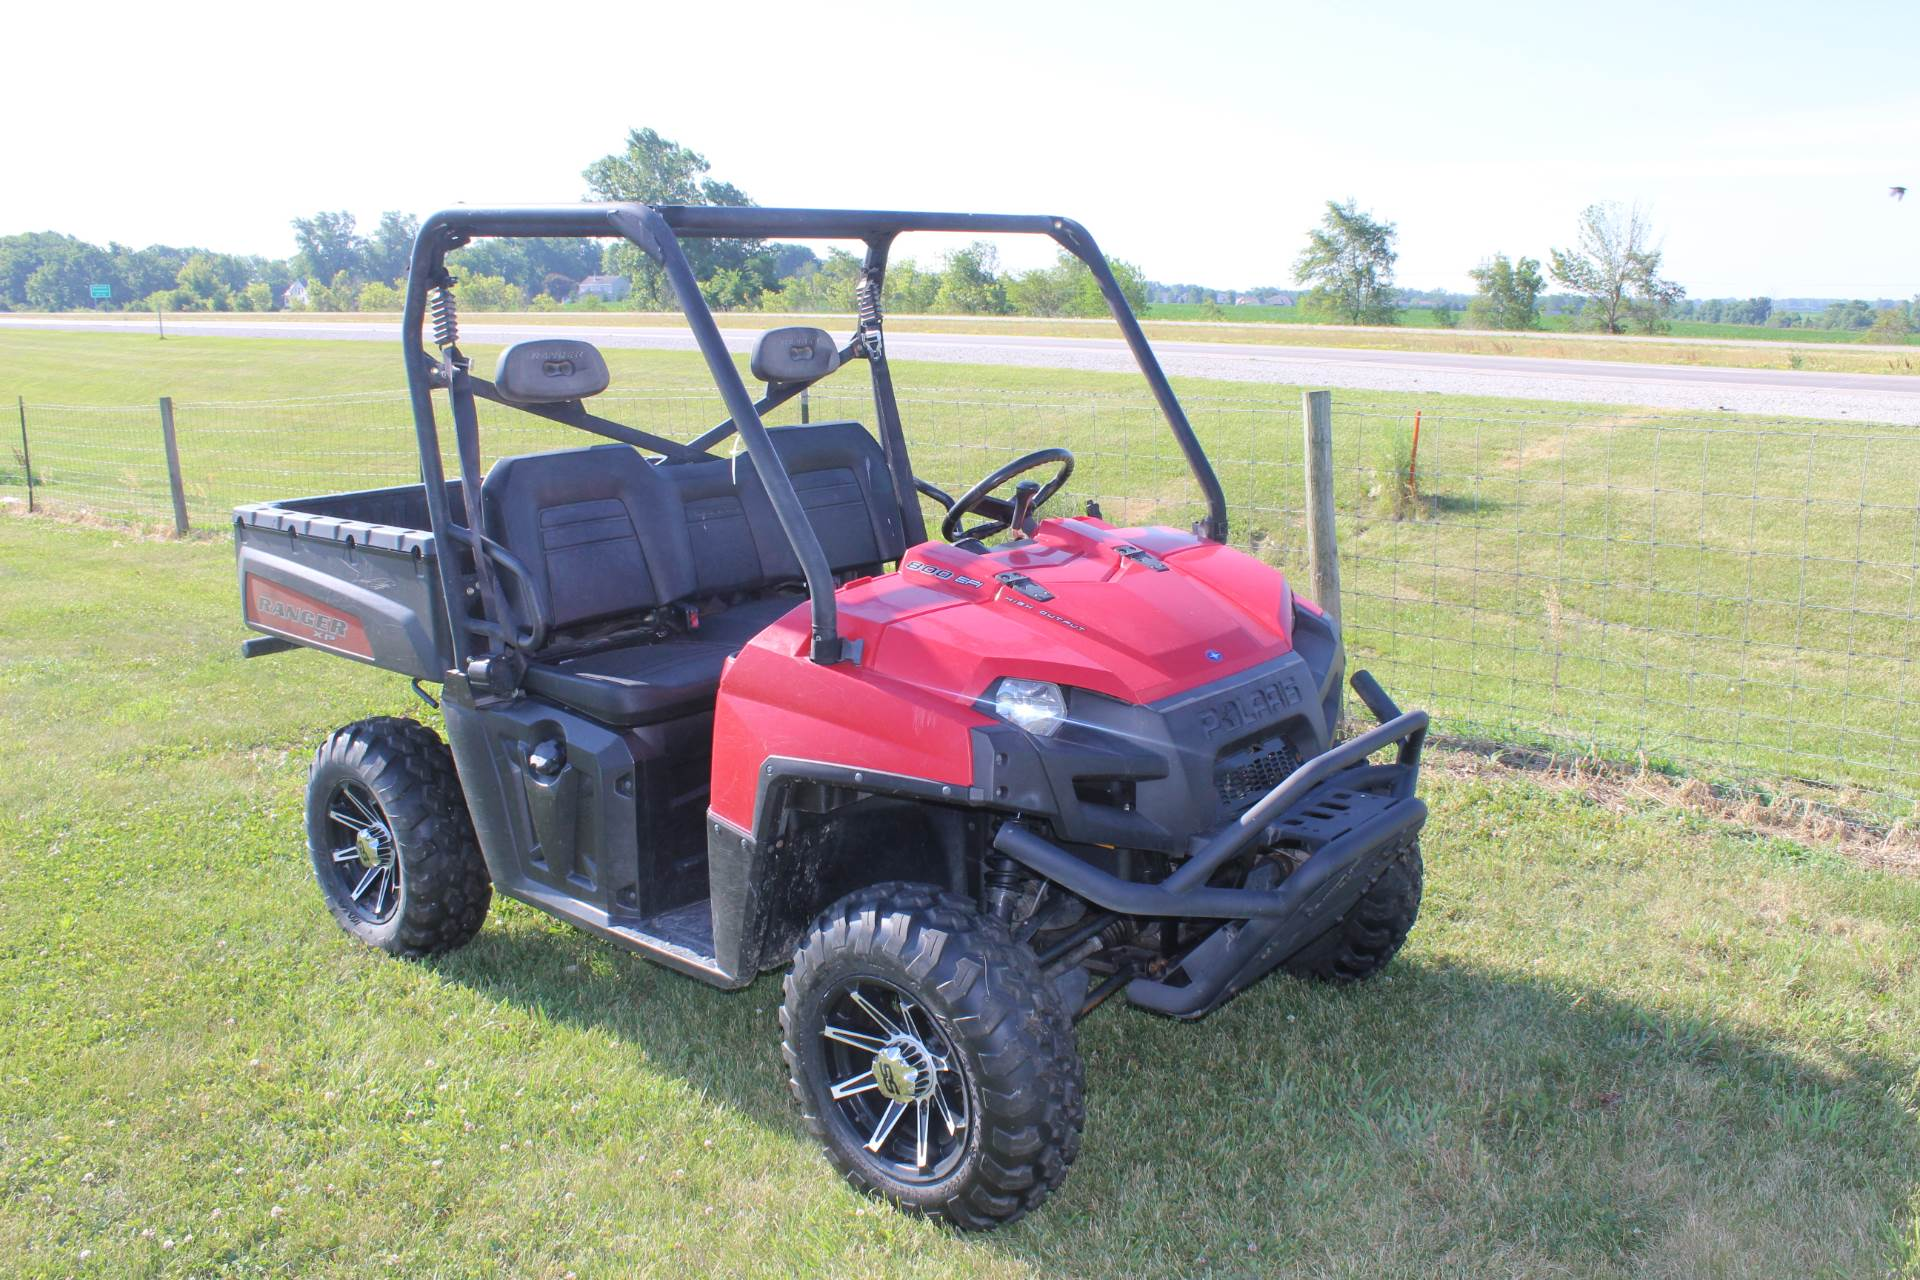 2011 Polaris Ranger XP® 800 in Ottumwa, Iowa